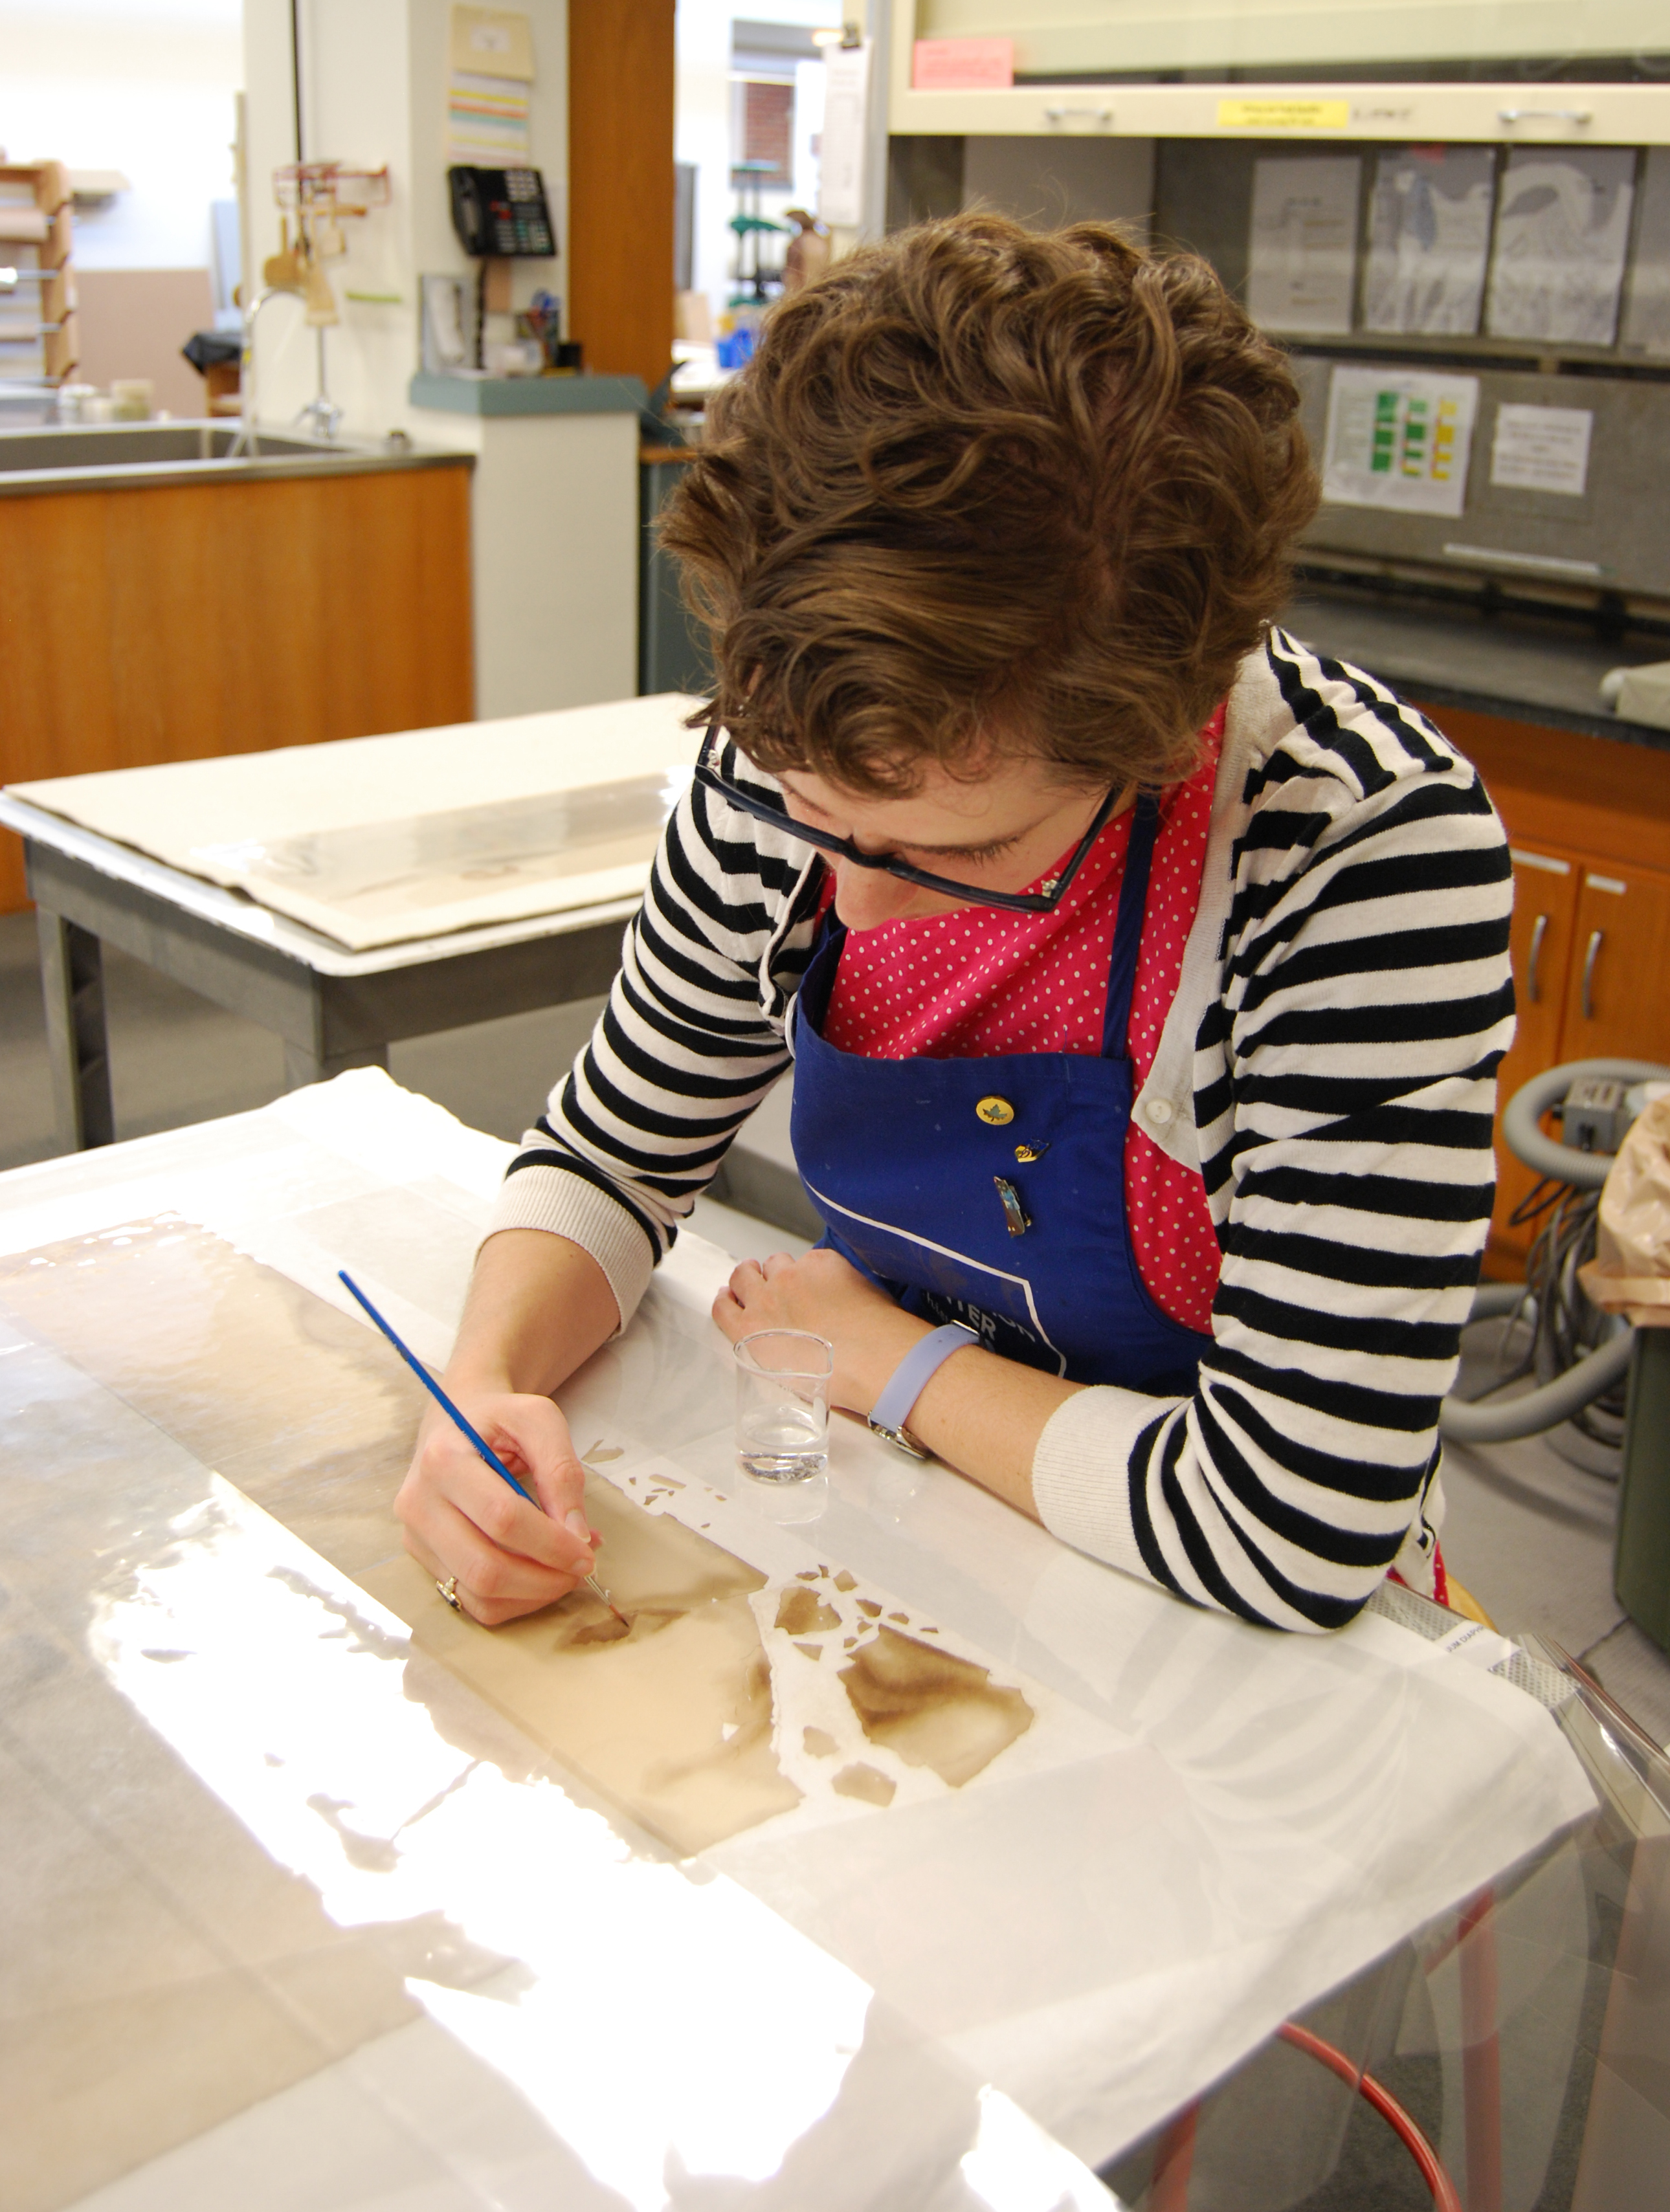 Conservator reduces stains on the portrait